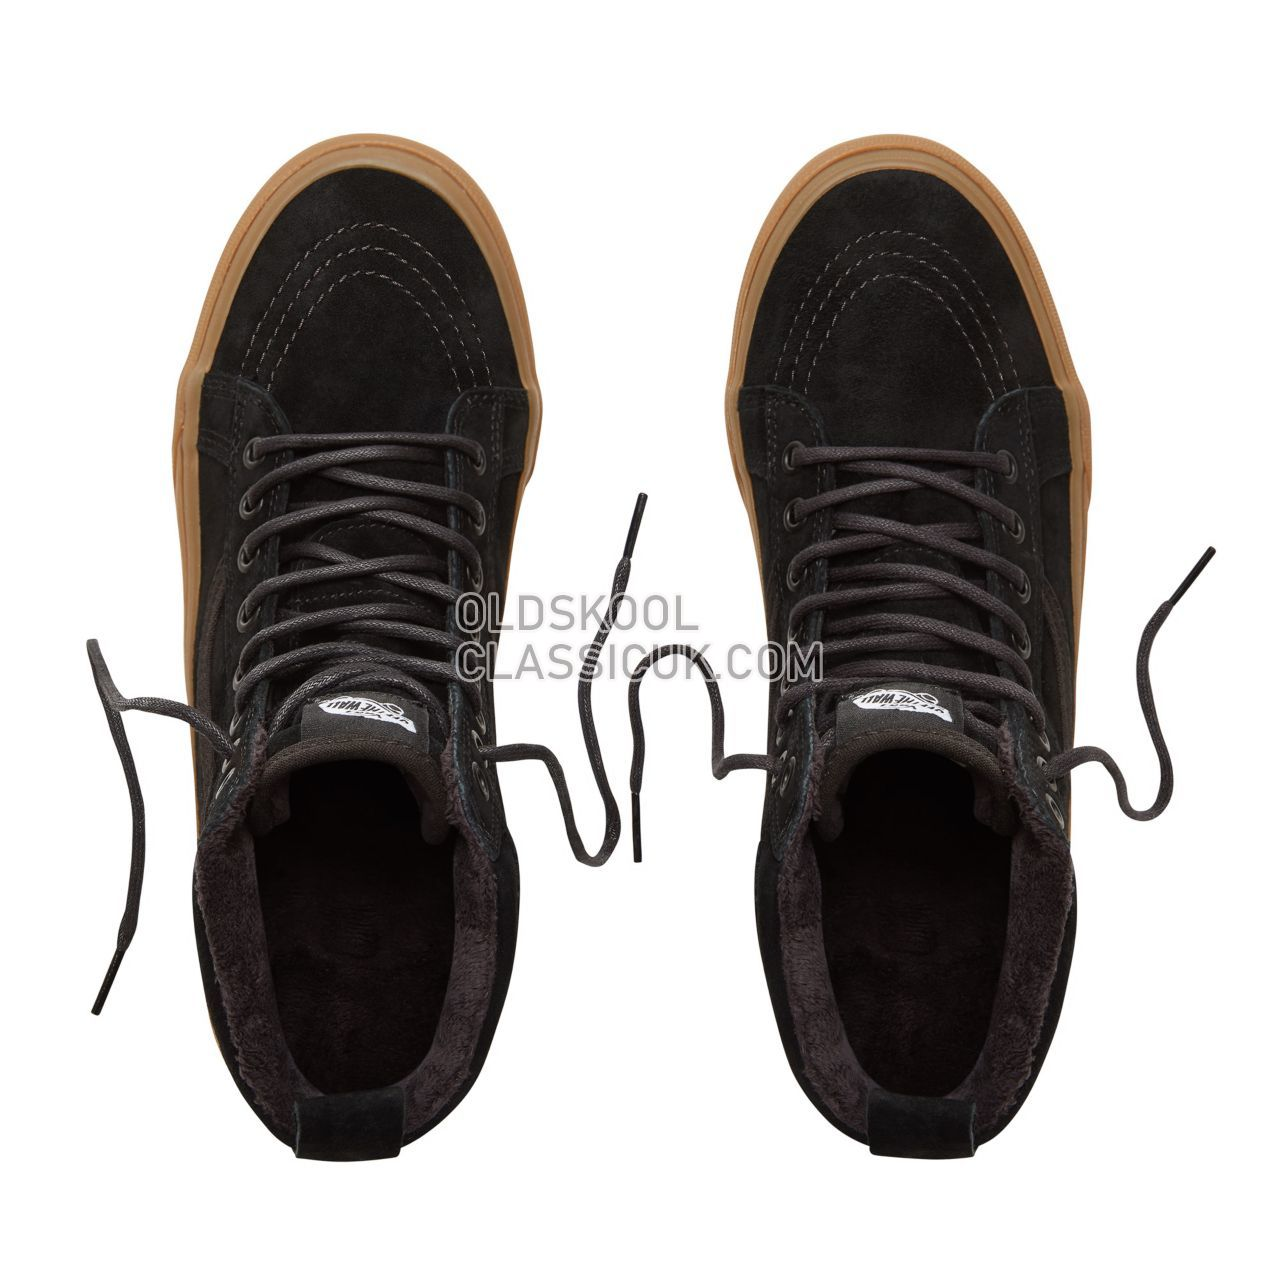 Vans Sk8-Hi MTE Sneakers Mens (Mte) Black/Gum VA33TXGT7 Shoes